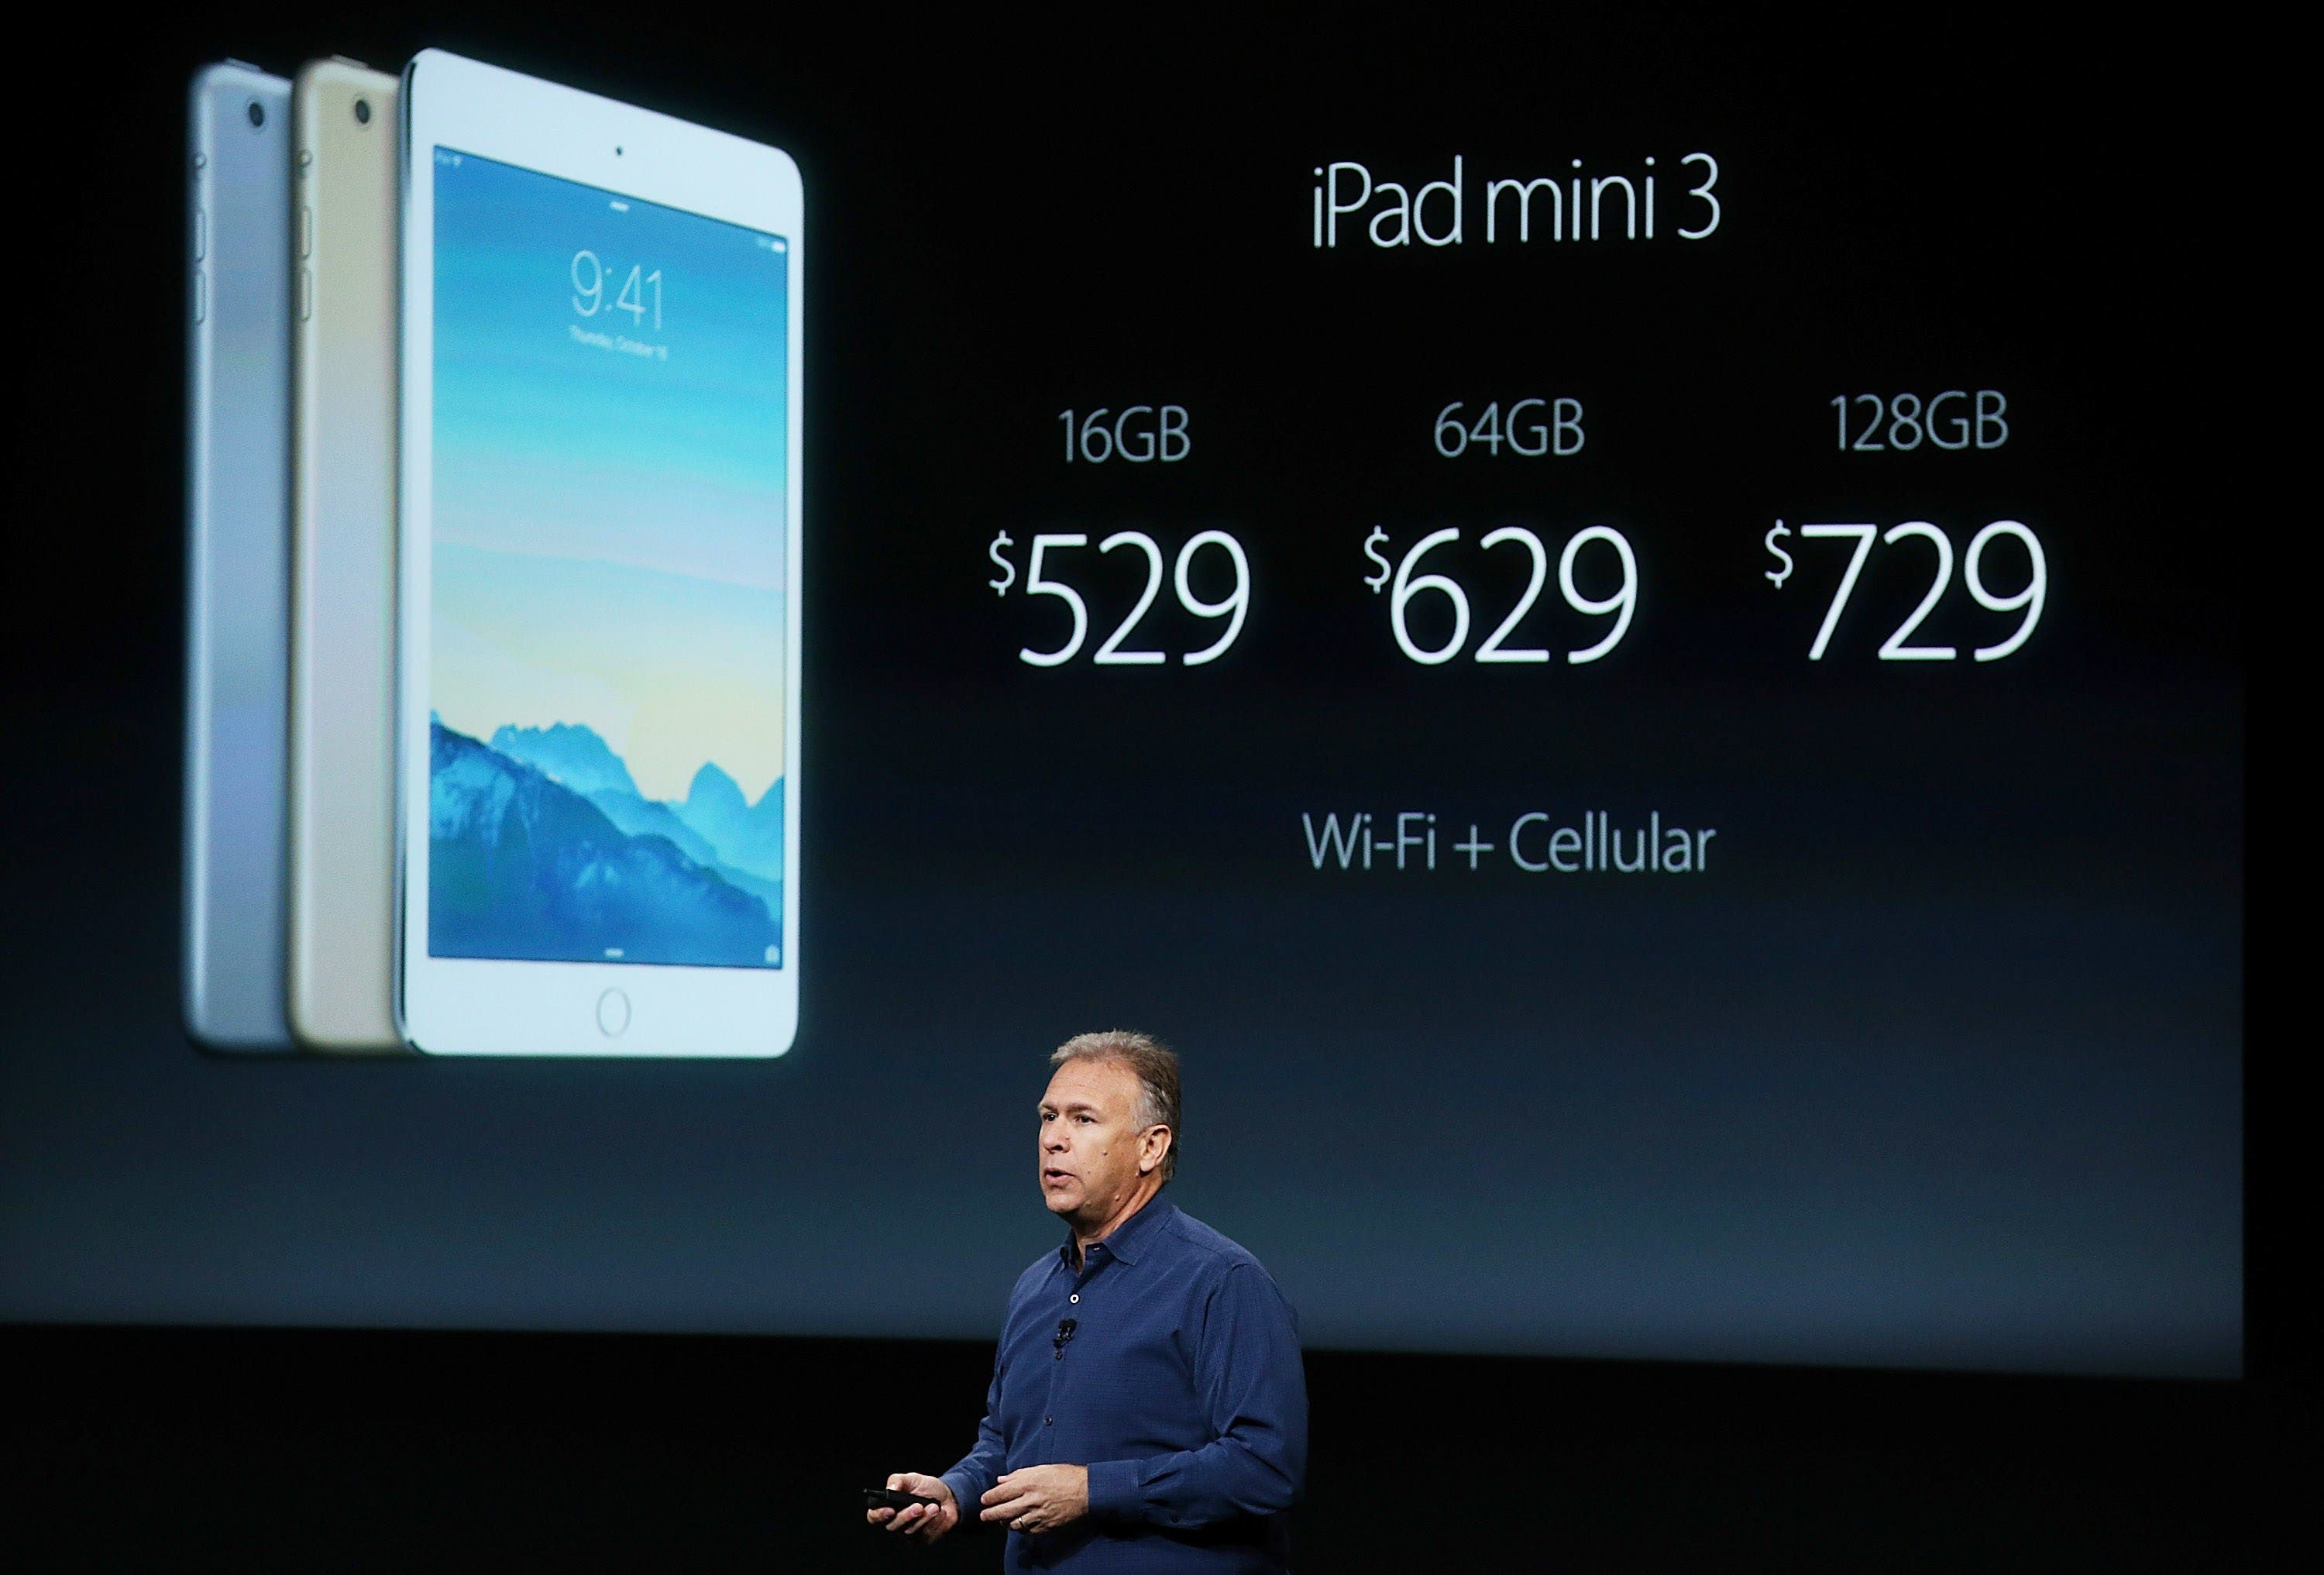 Apple's Senior Vice President of Software Engineering Craig Federighi speaks during an event introducing new iPads at Apple's headquarters October 16, 2014 in Cupertino, California. (AFP)